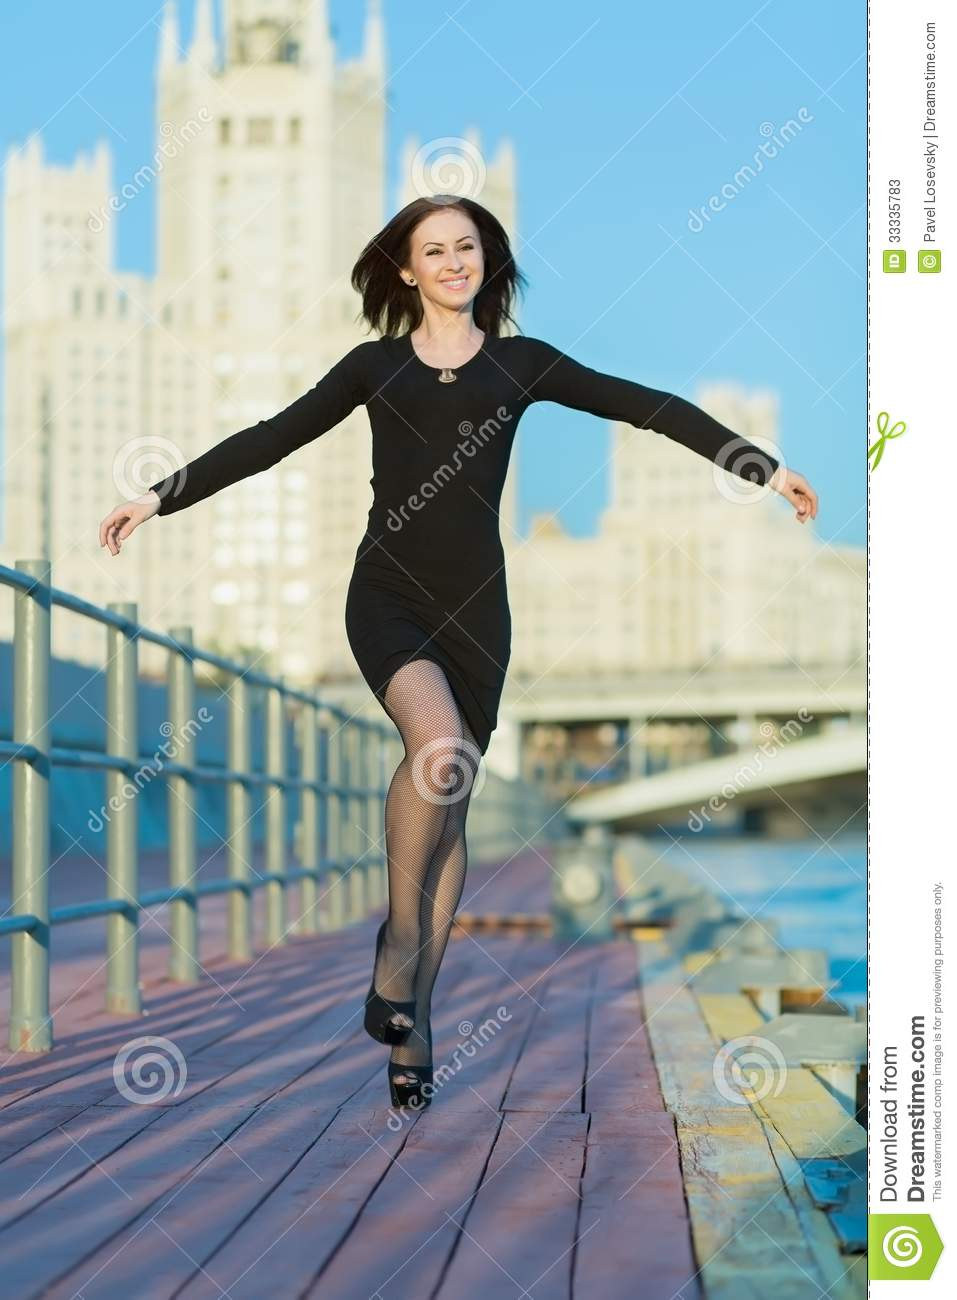 Woman in dress jumping arms outstretched to the sides